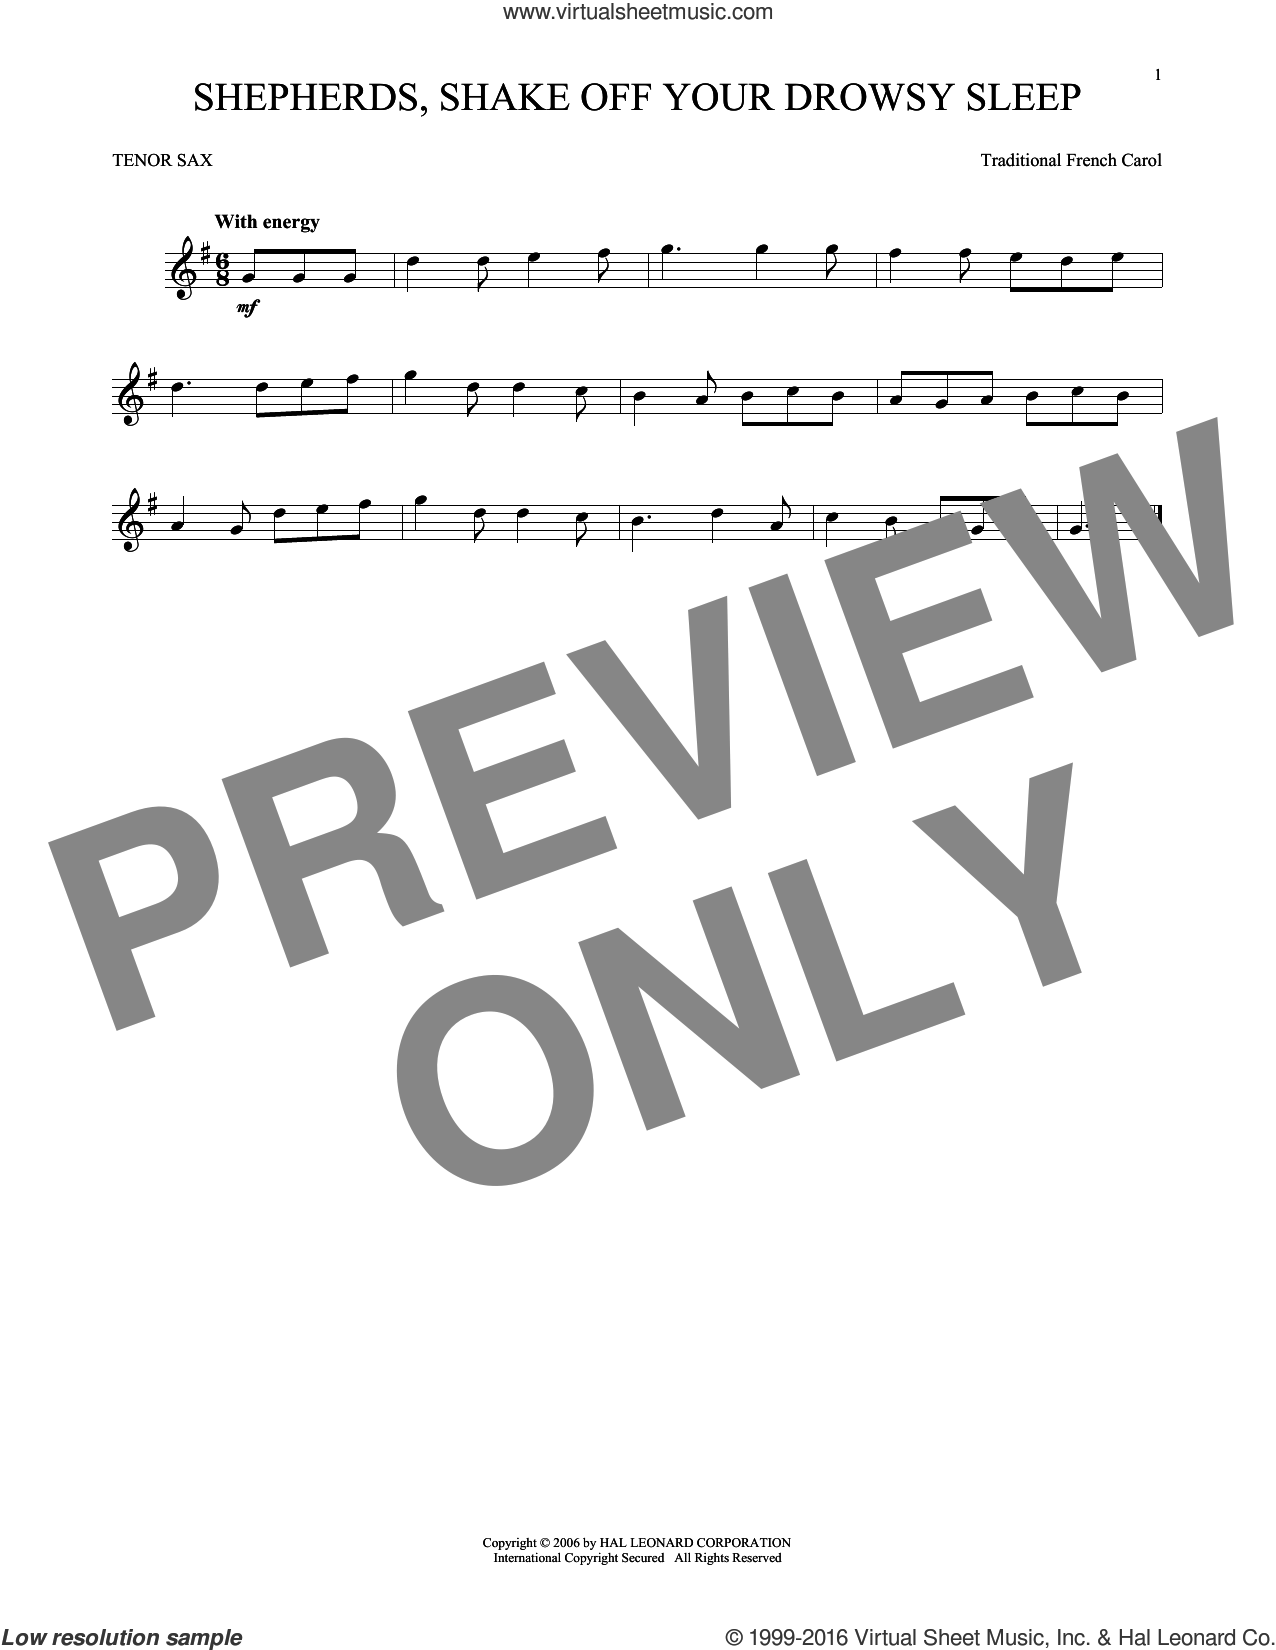 Shepherds, Shake Off Your Drowsy Sleep sheet music for tenor saxophone solo. Score Image Preview.